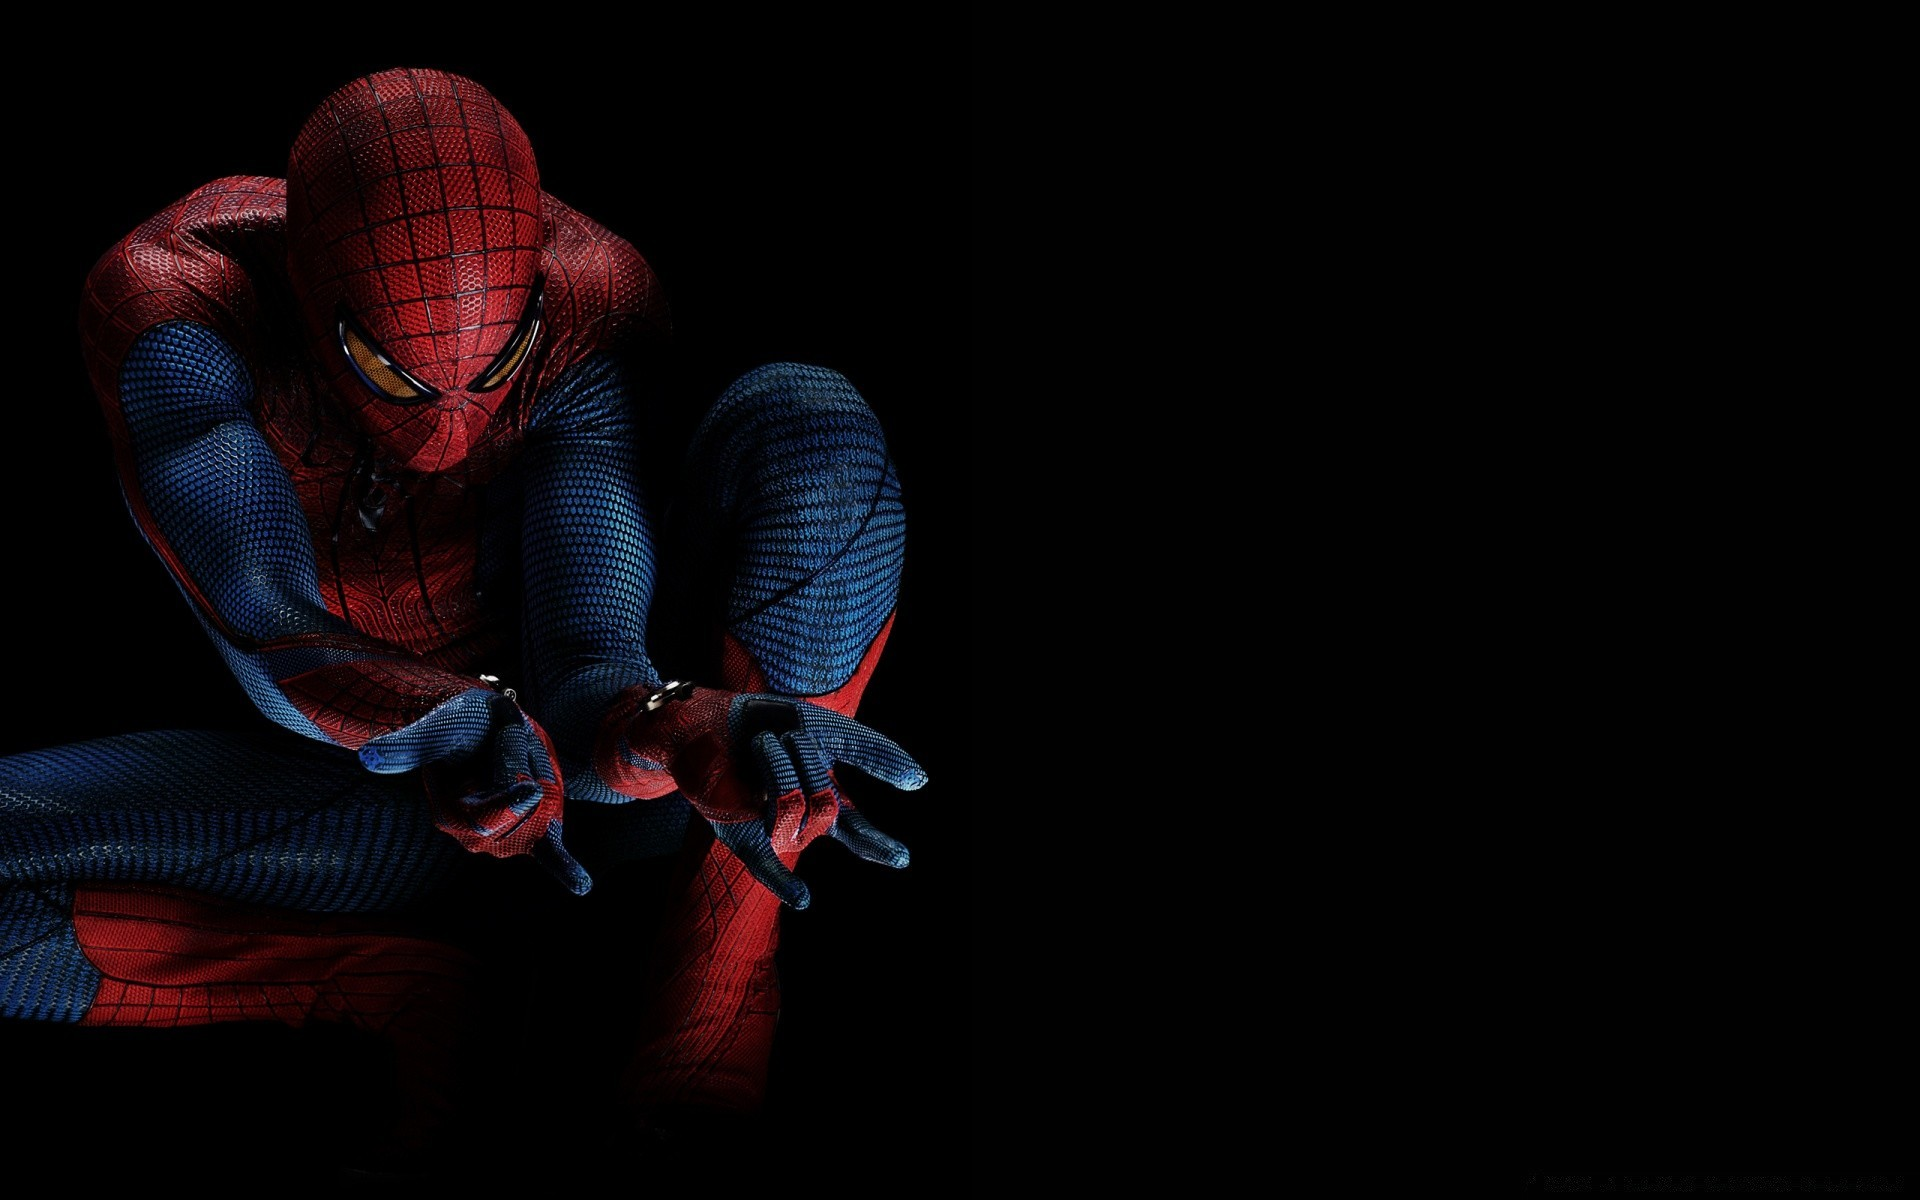 the amazing spider-man. iphone wallpapers for free.